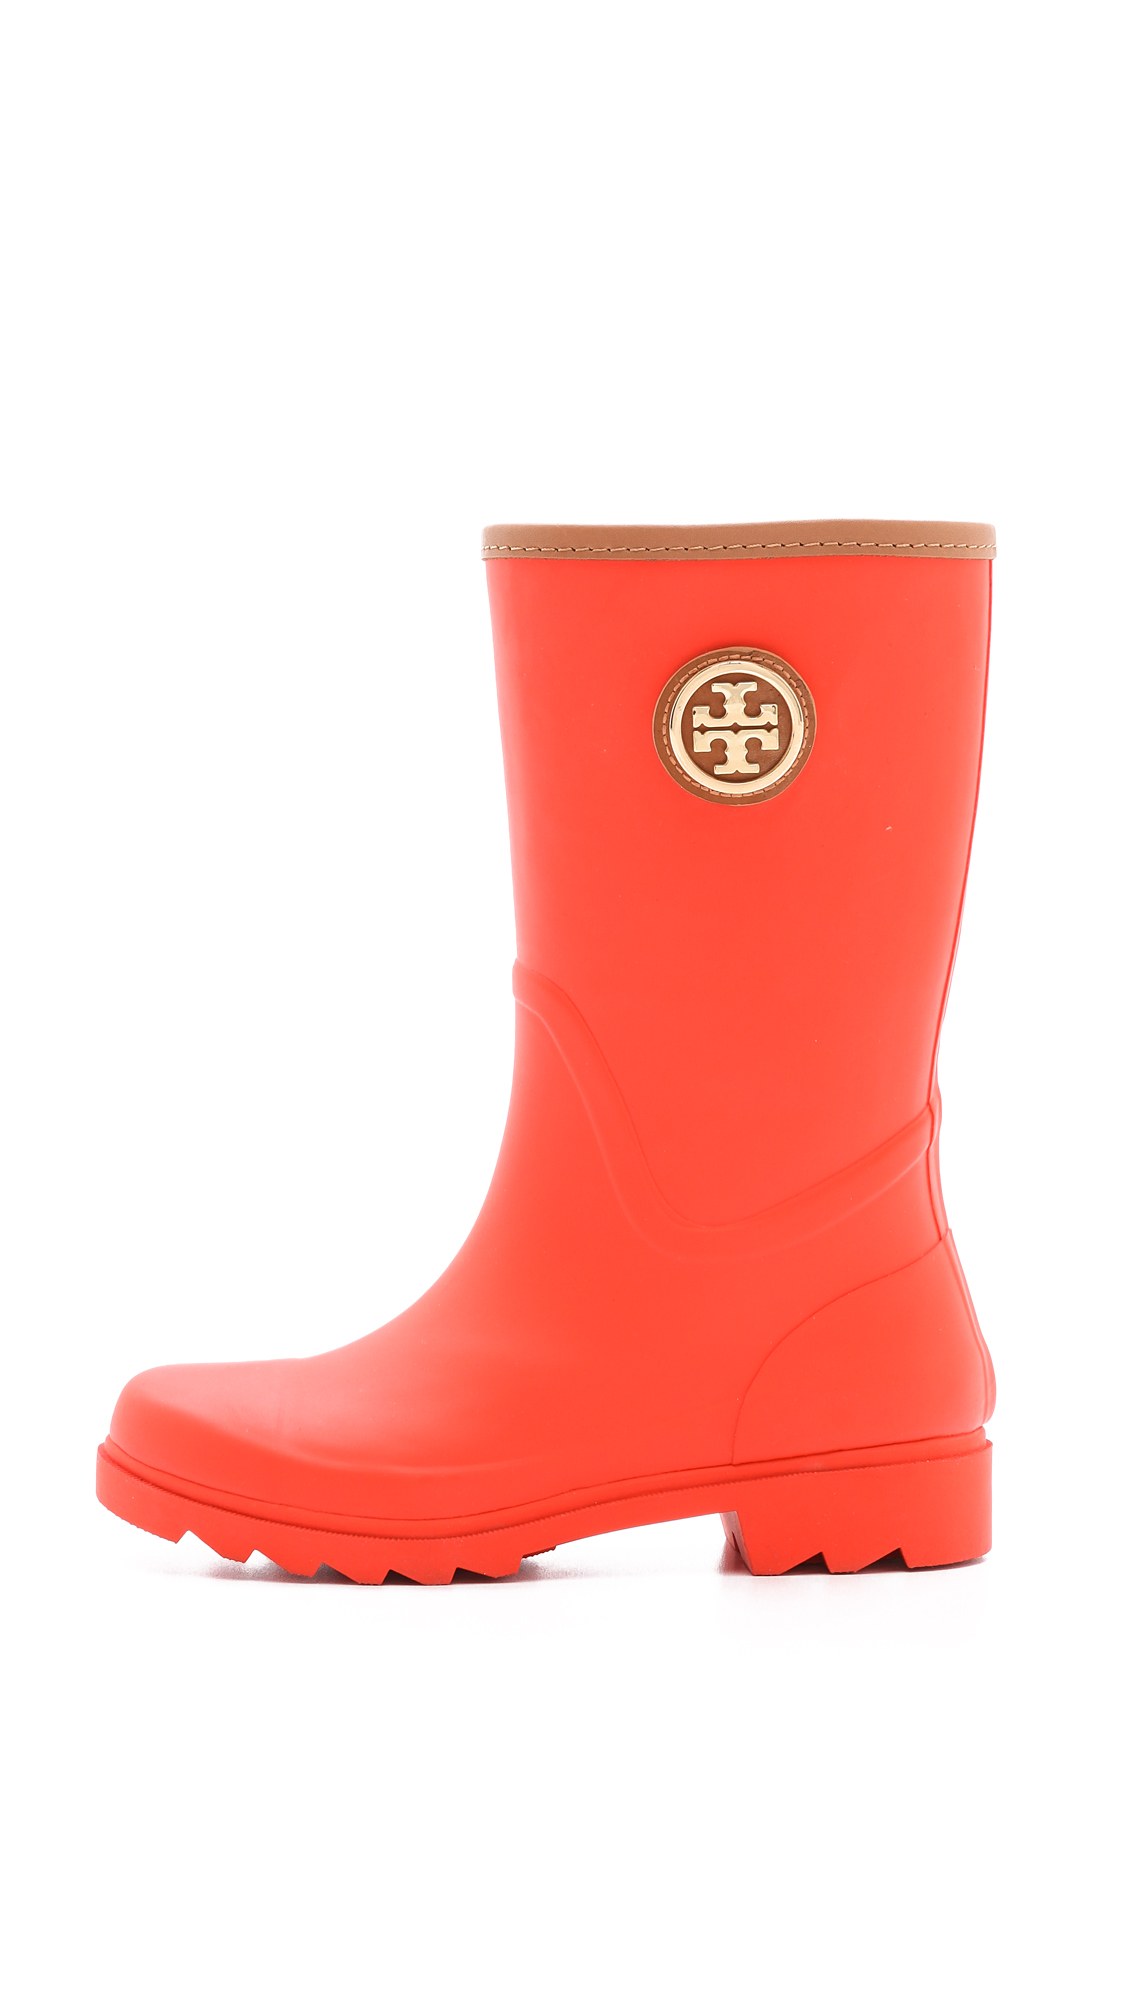 d173cd2a6b5 Tory Burch Maureen Rain Boots